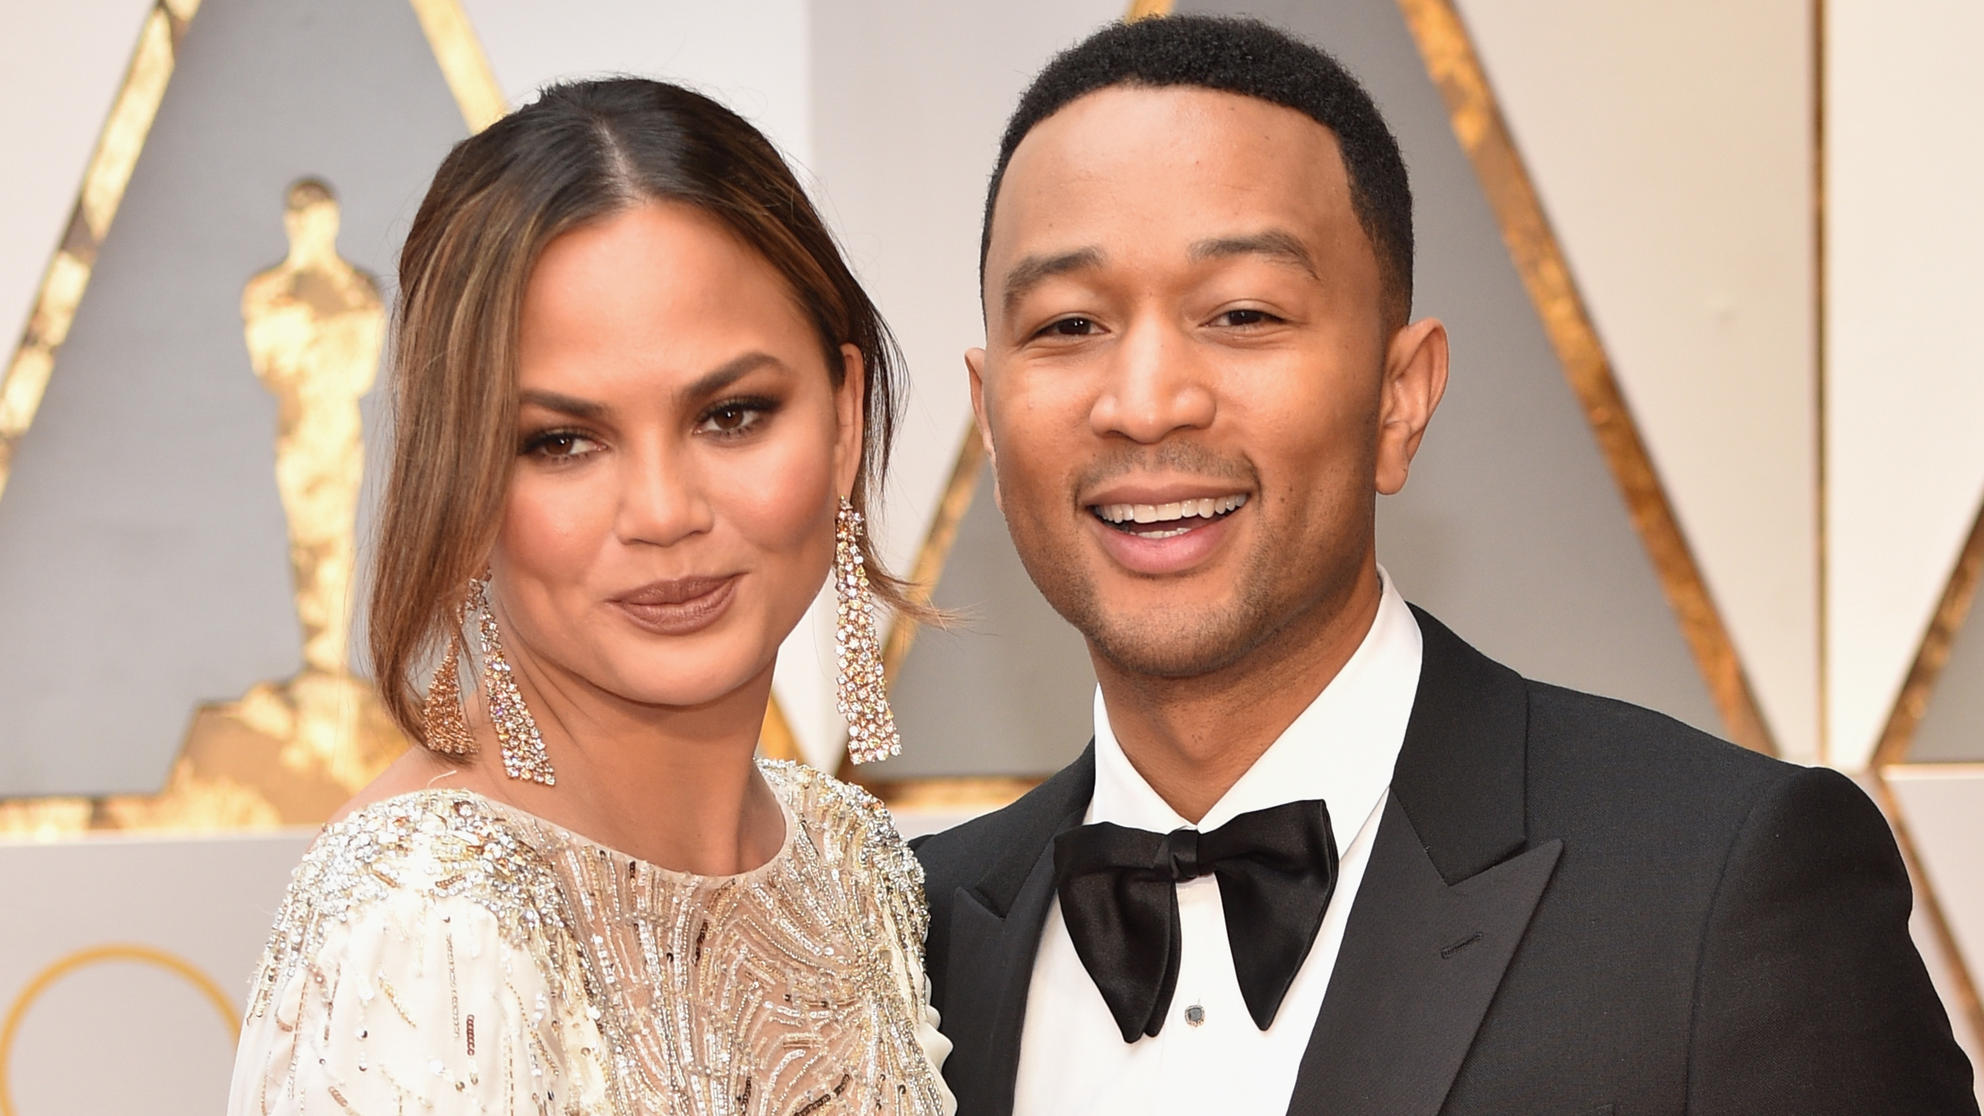 John Legend on SupportingWife Chrissy Teigen During Her Postpartum Depression: 'That's the Least I Could Do'